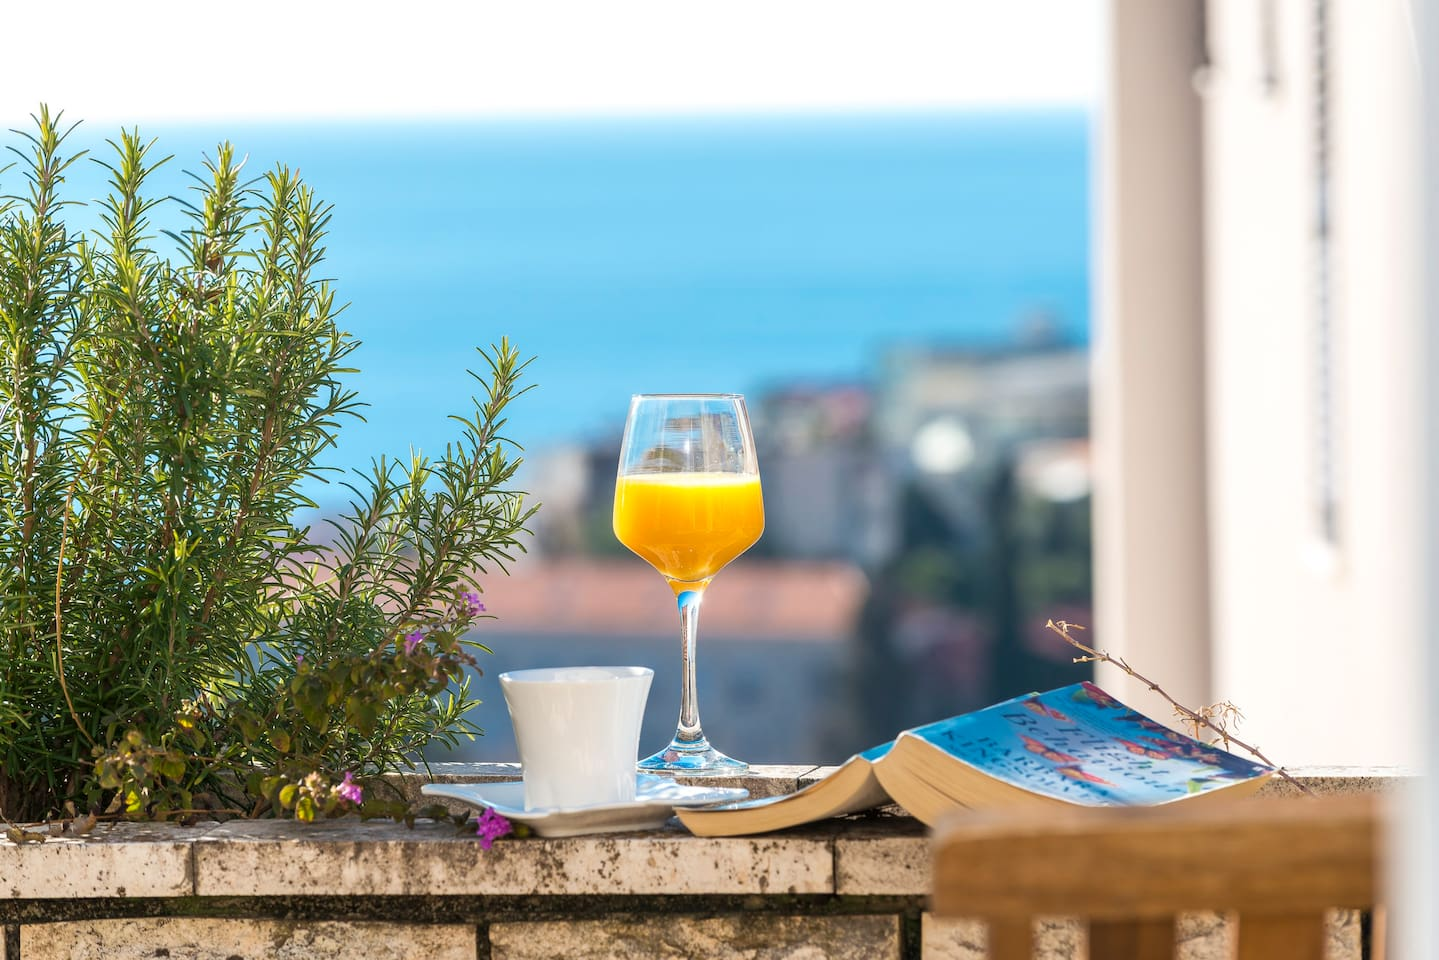 Enjoy your beautiful mornings and evenings on our terrace